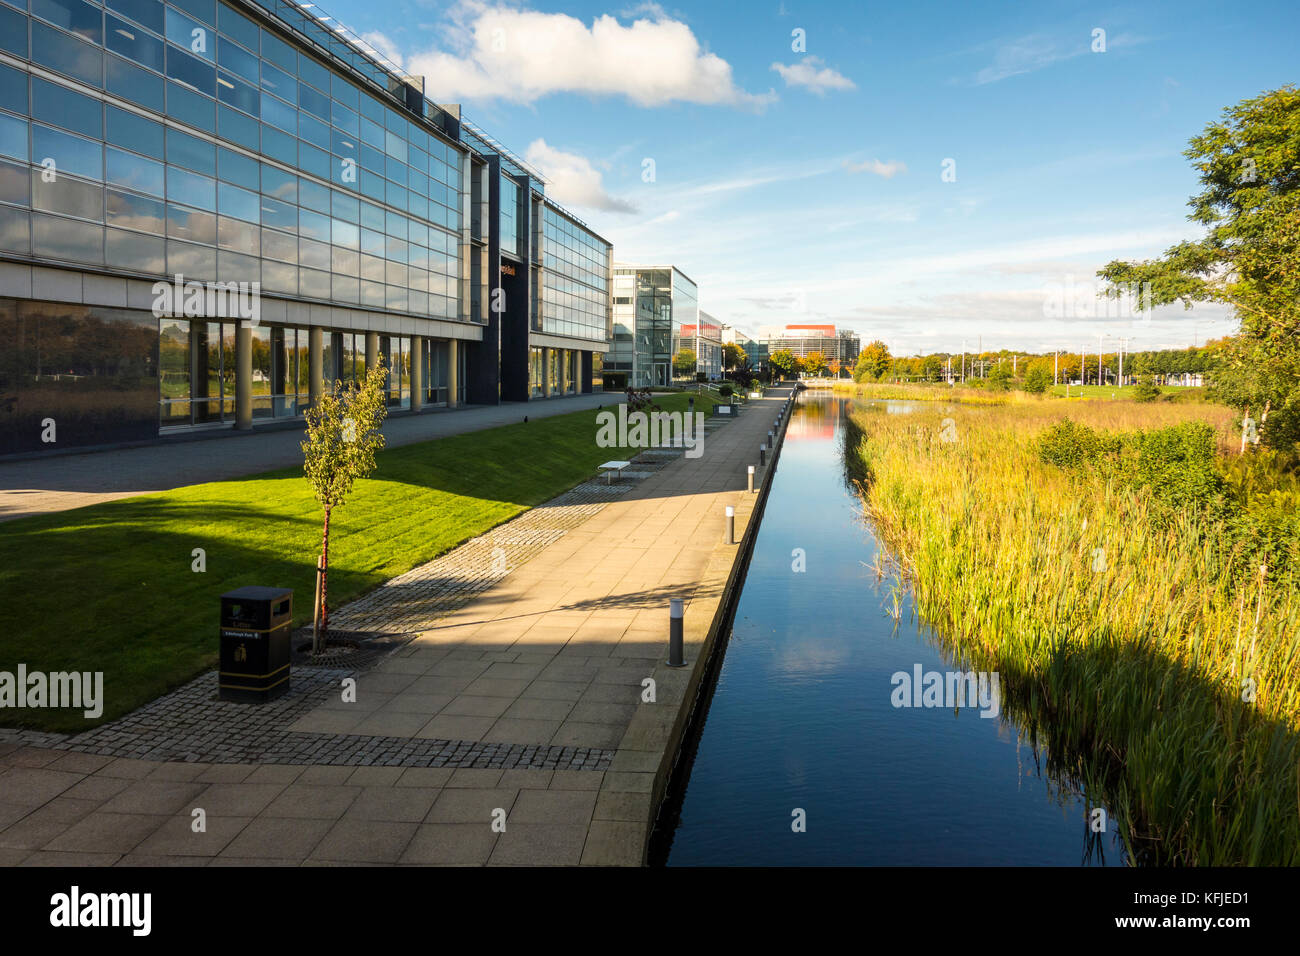 Edinburgh Park business park in South Gyle, Edinburgh, Scotland. Masterplan by architect Richard Meier. - Stock Image